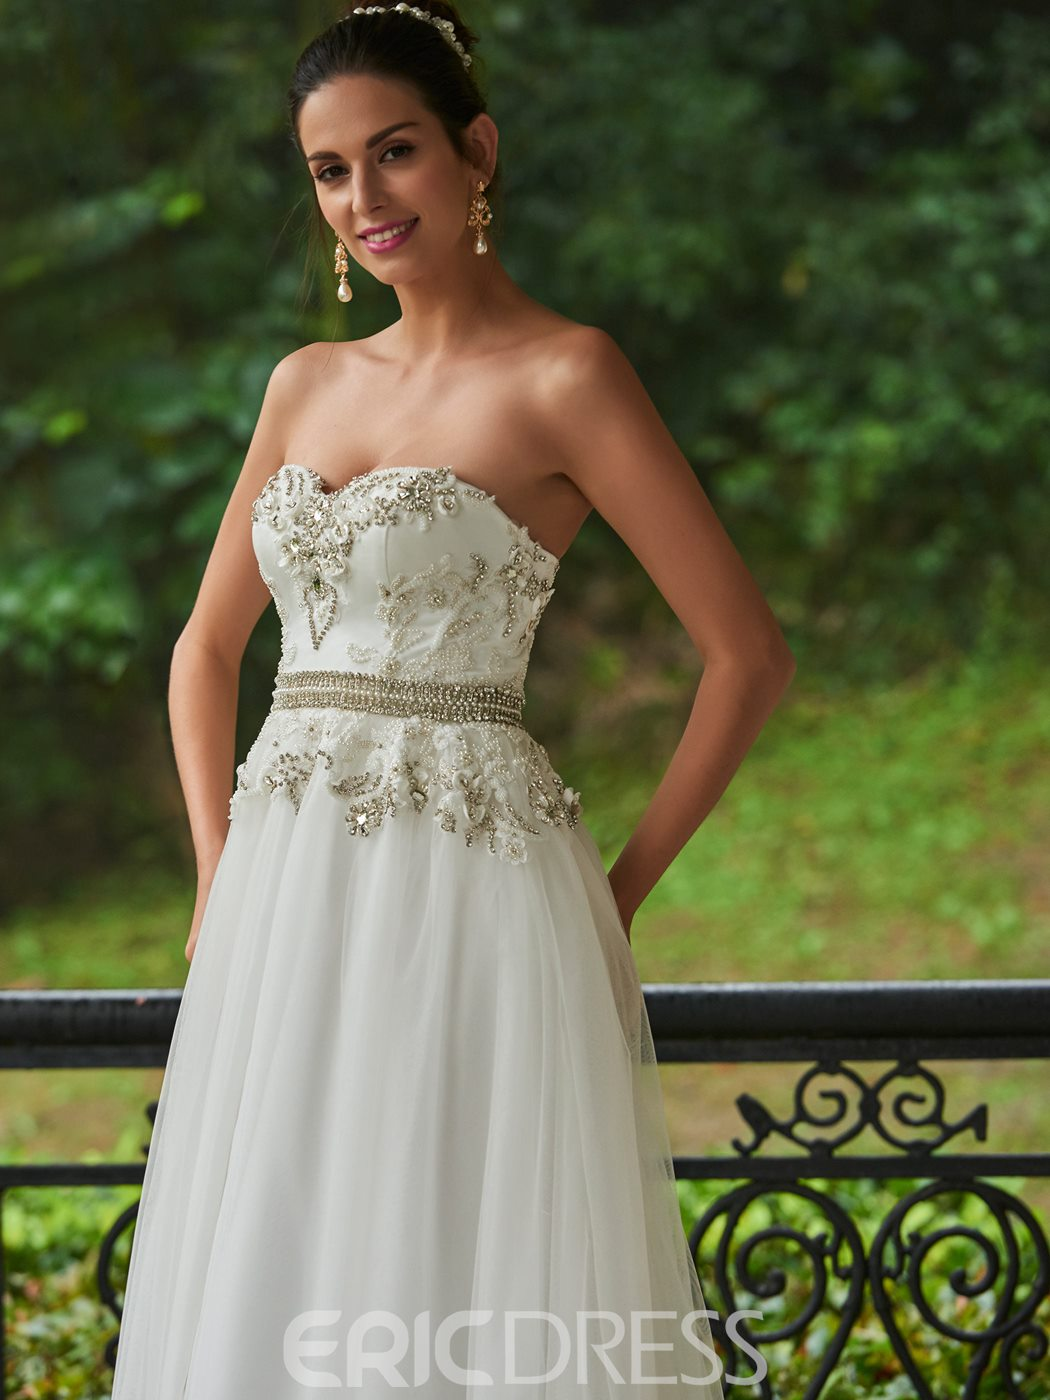 Ericdress Beautiful Beaded Floor Length Sweetheart A Line Wedding Dress